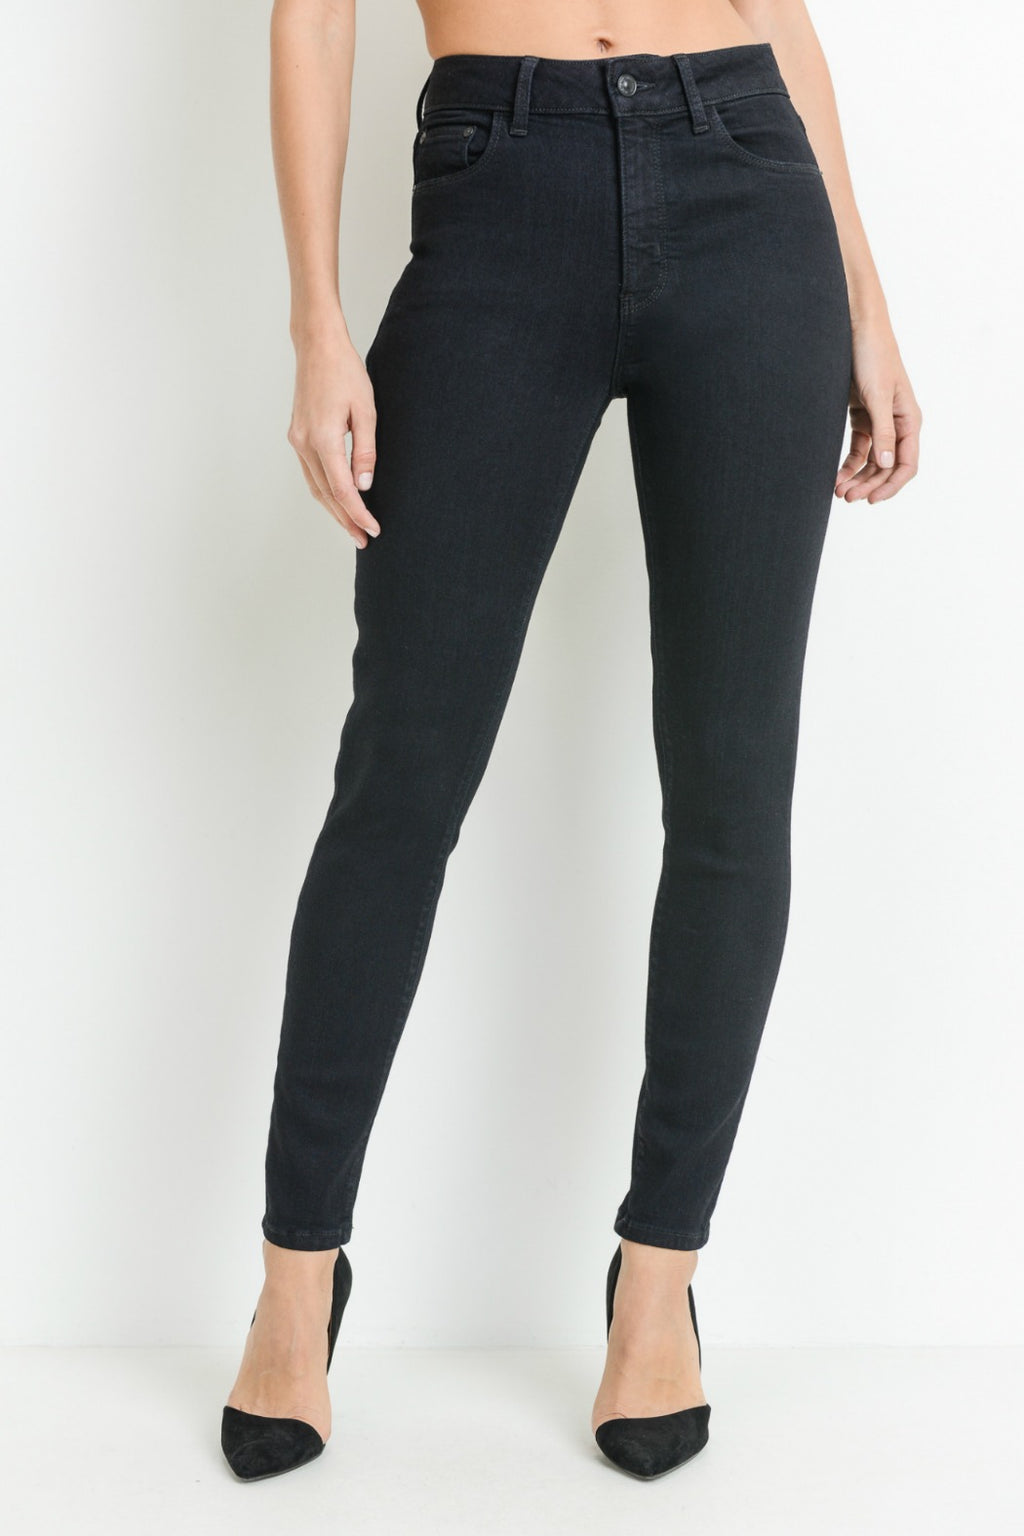 "Just Black Denim 11"" High Rise Basic Skinny -$10 OFF WITH CODE: DENIMSALE"